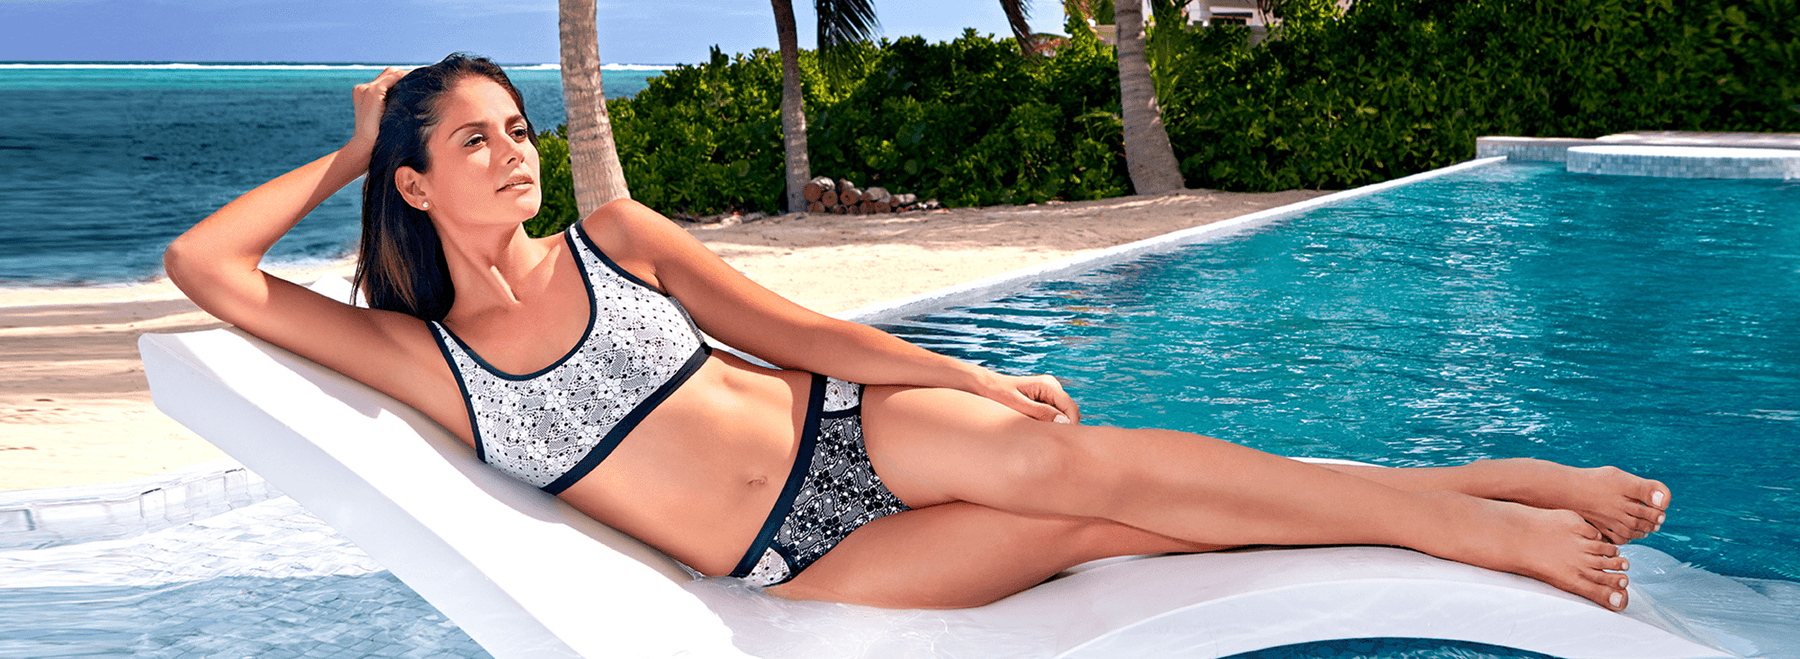 Conservative Swimsuits That Are Stylish